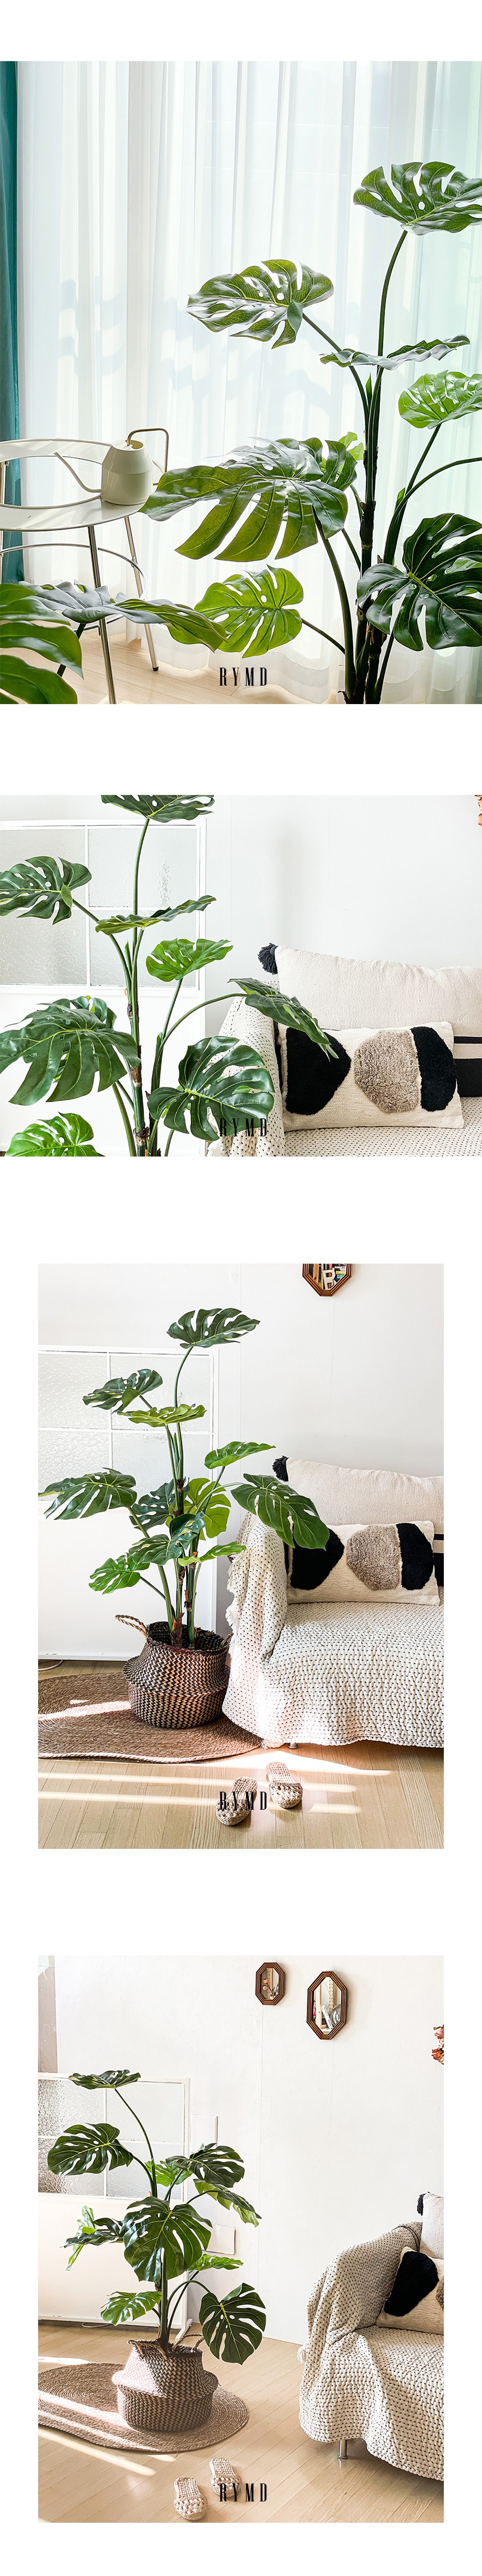 greenery-monstera-tree_05.jpg